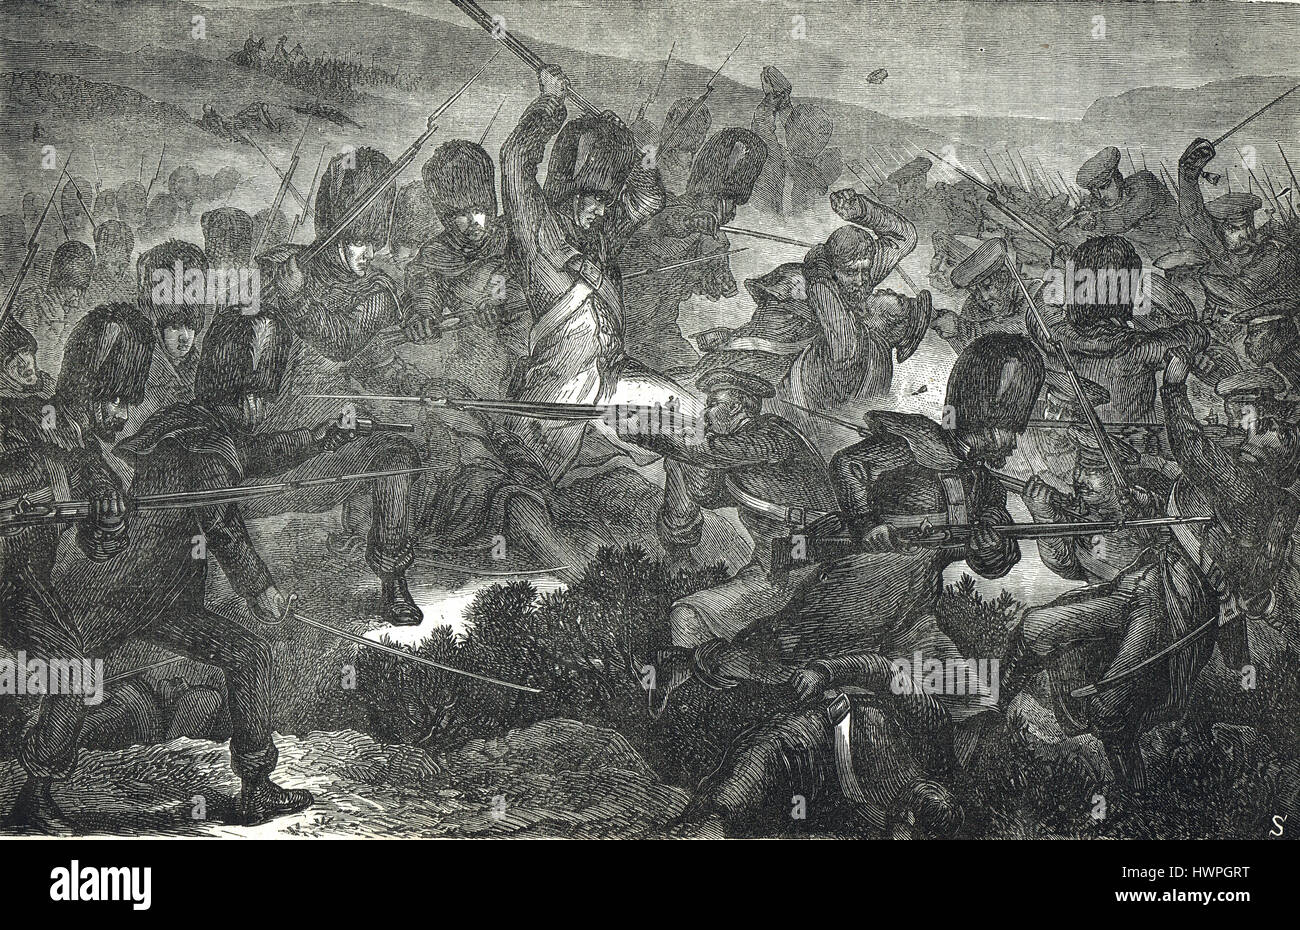 Charge of the Guards, The Battle of Inkerman, Crimean War, 5 November, 1854 - Stock Image